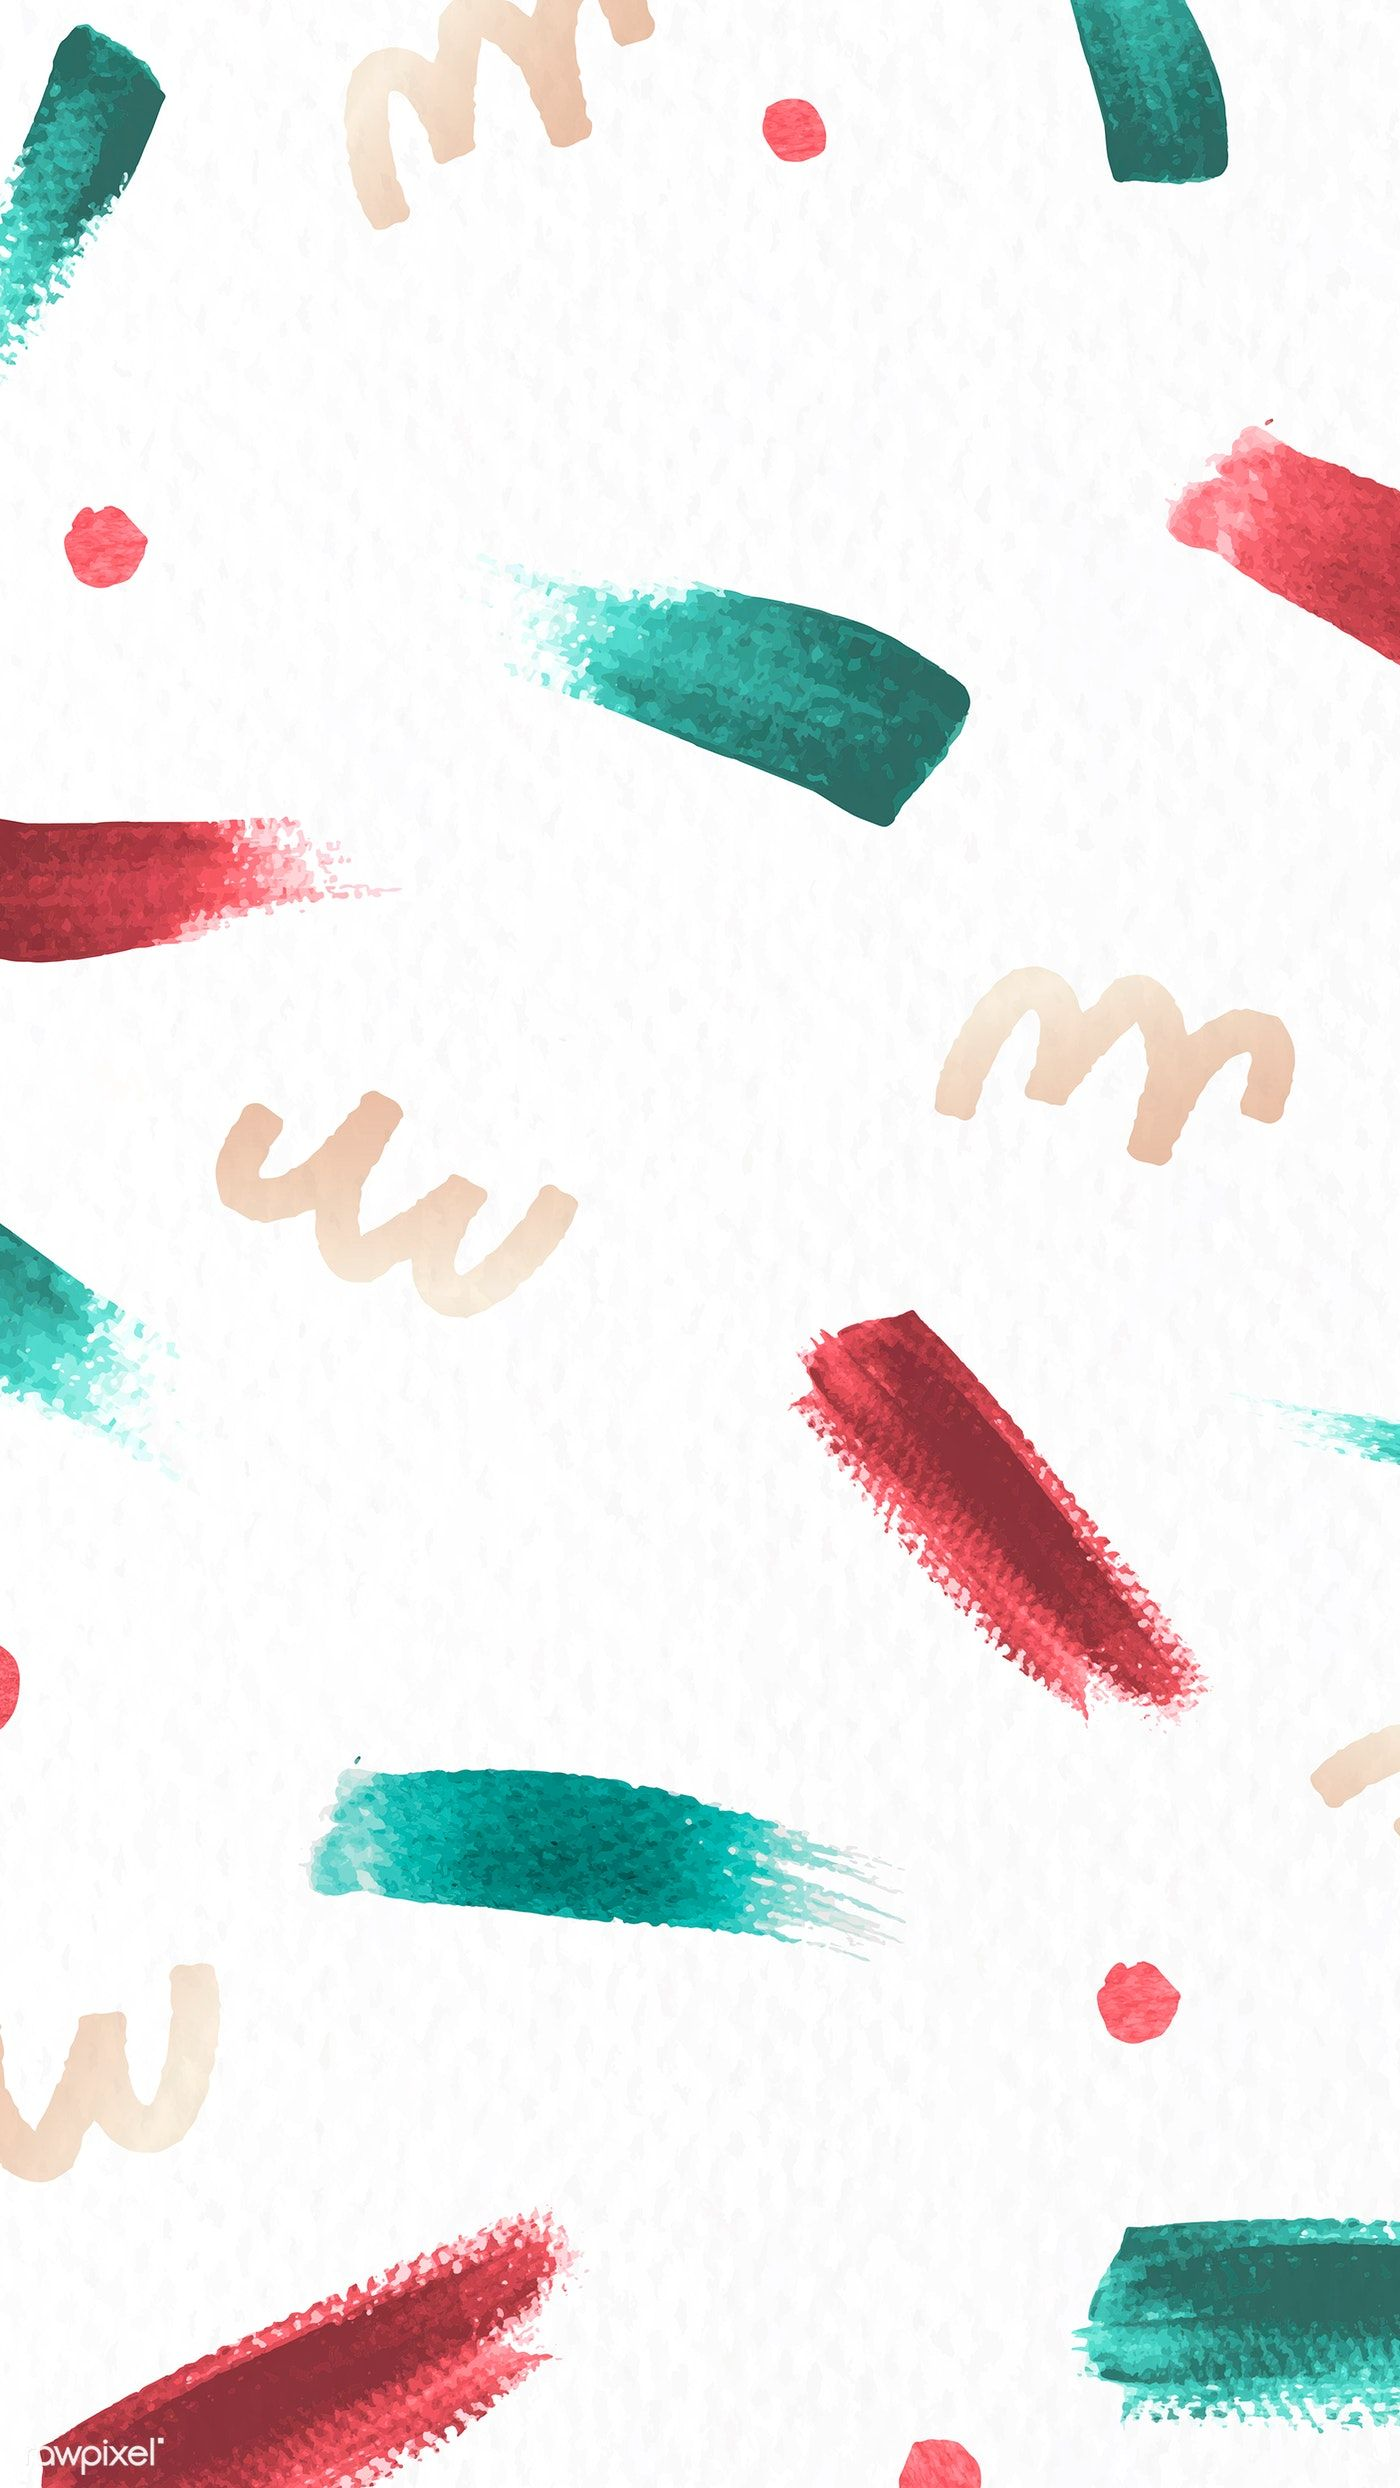 Download premium image of Red and green brush stroke